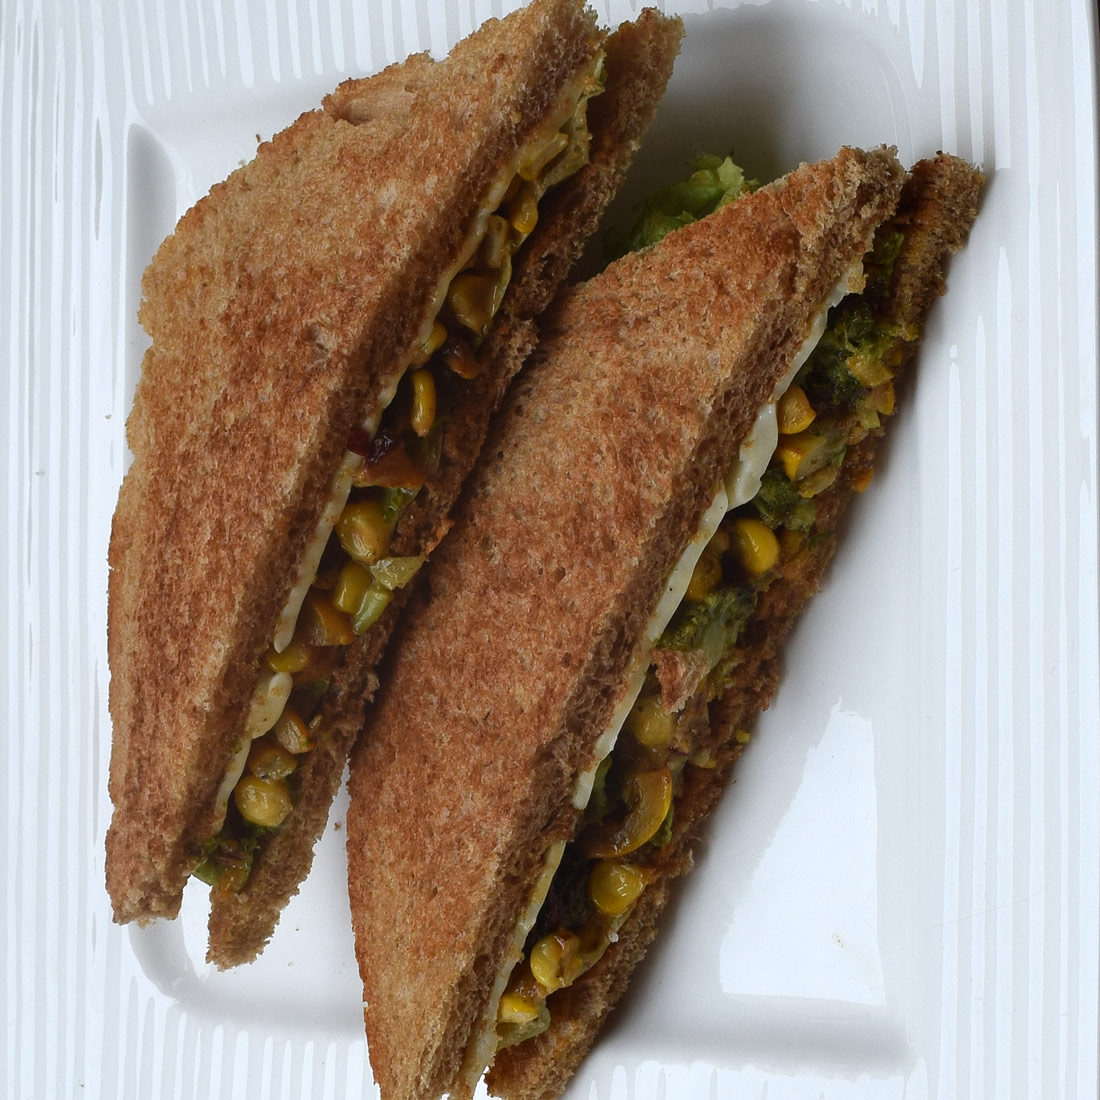 Broccoli, Zucchini and Corn Sandwich Recipe